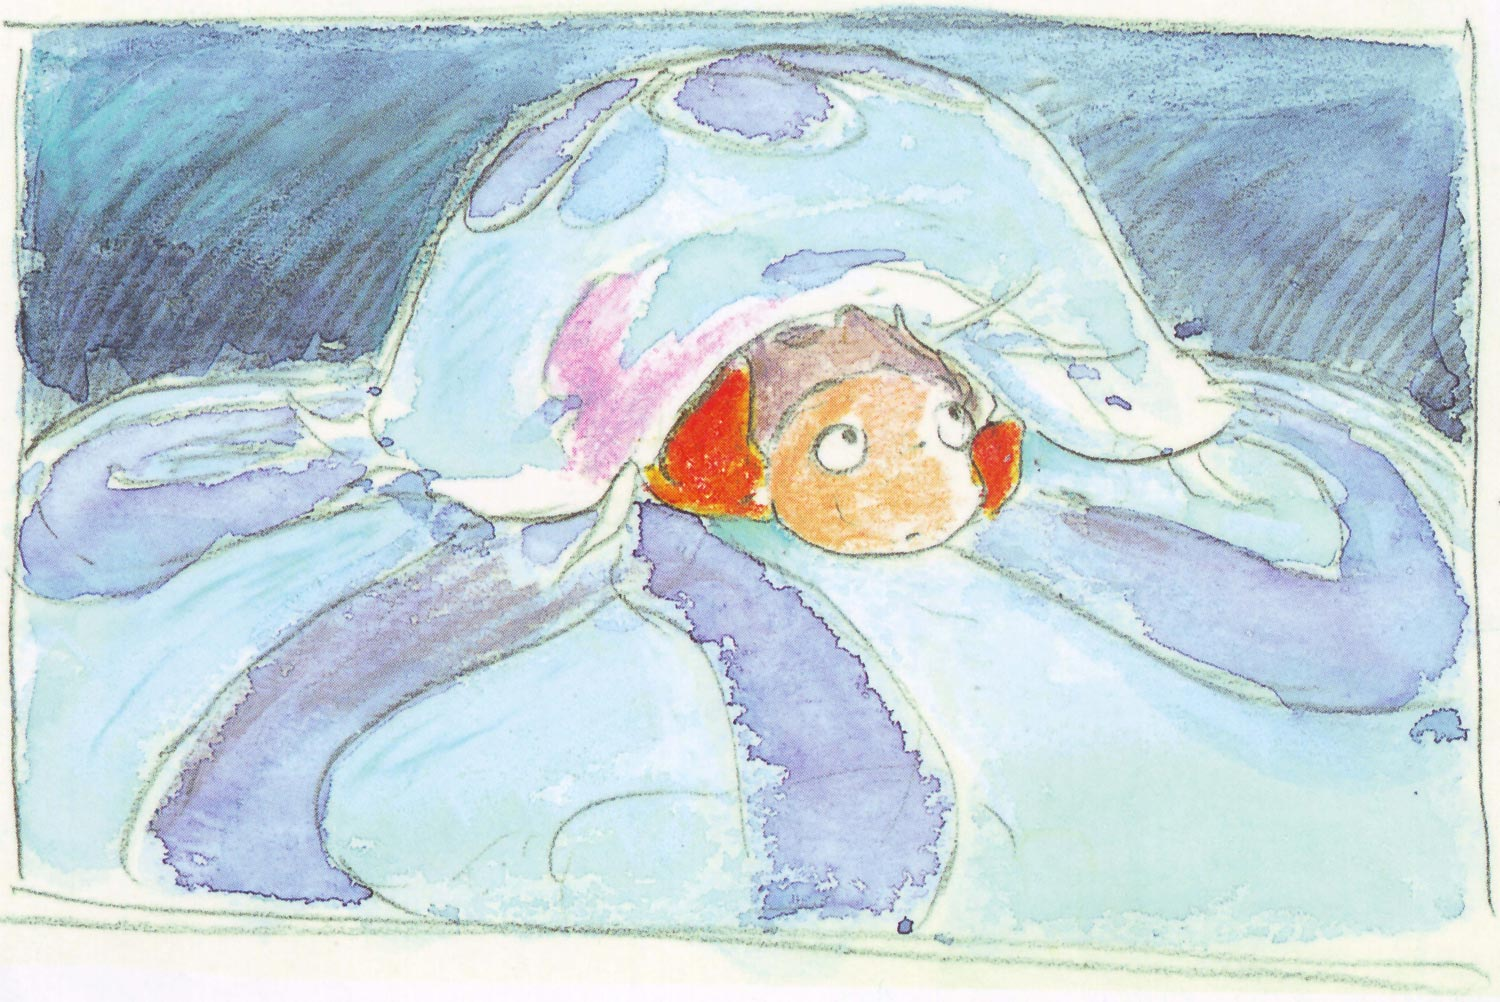 ponyo_on_the_cliff_by_the_sea_artwork_character__11.jpg